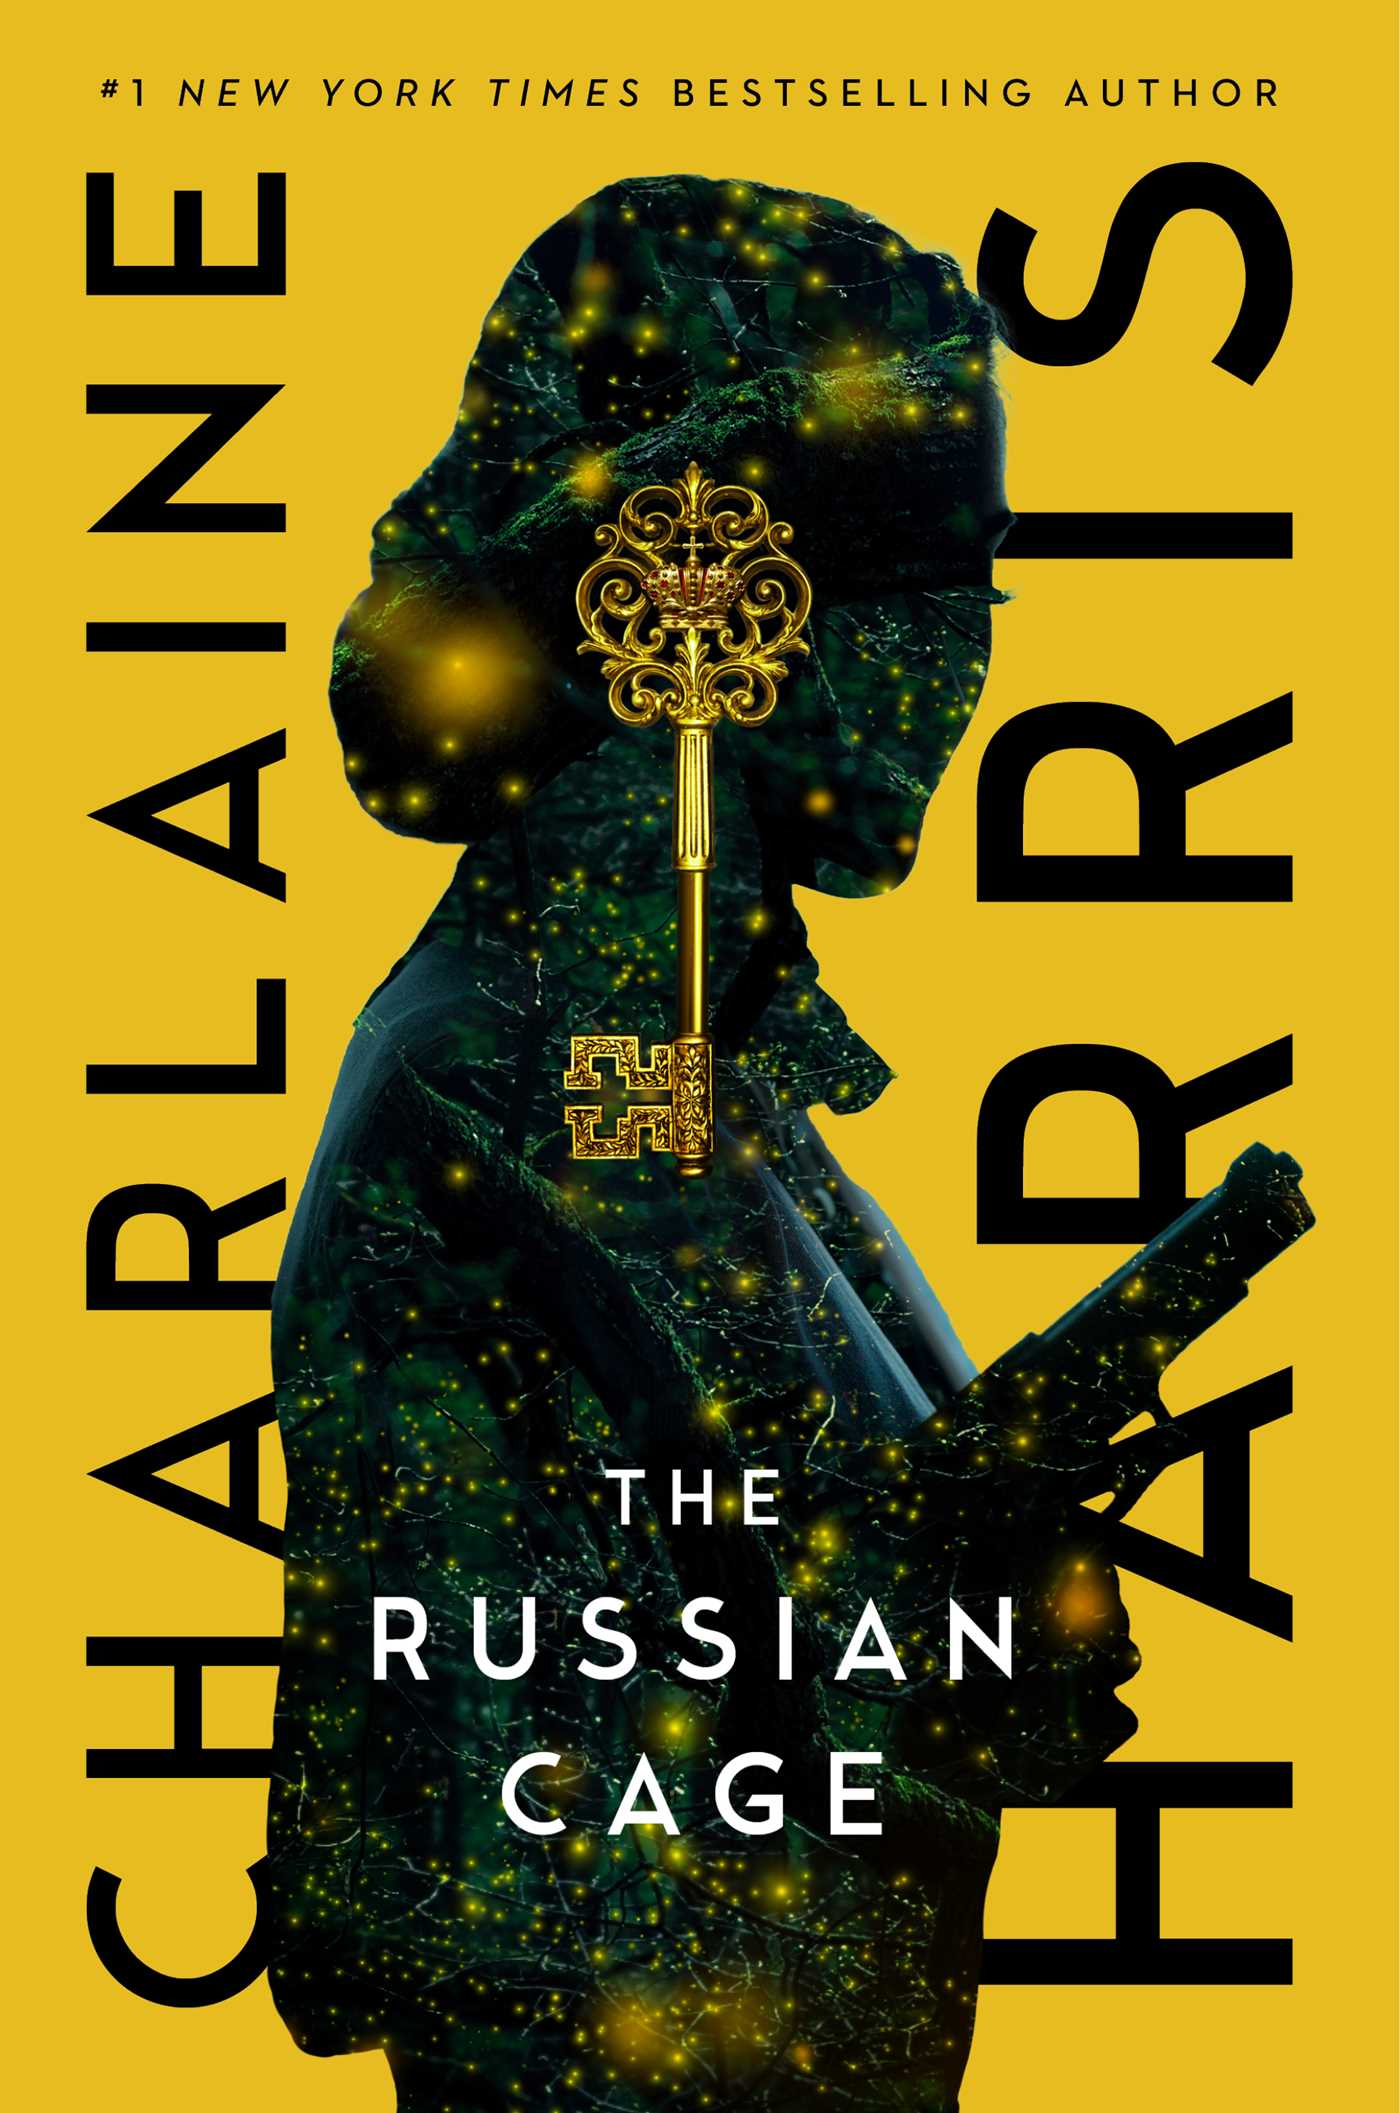 Book Review: The Russian Cage by Charlaine Harris